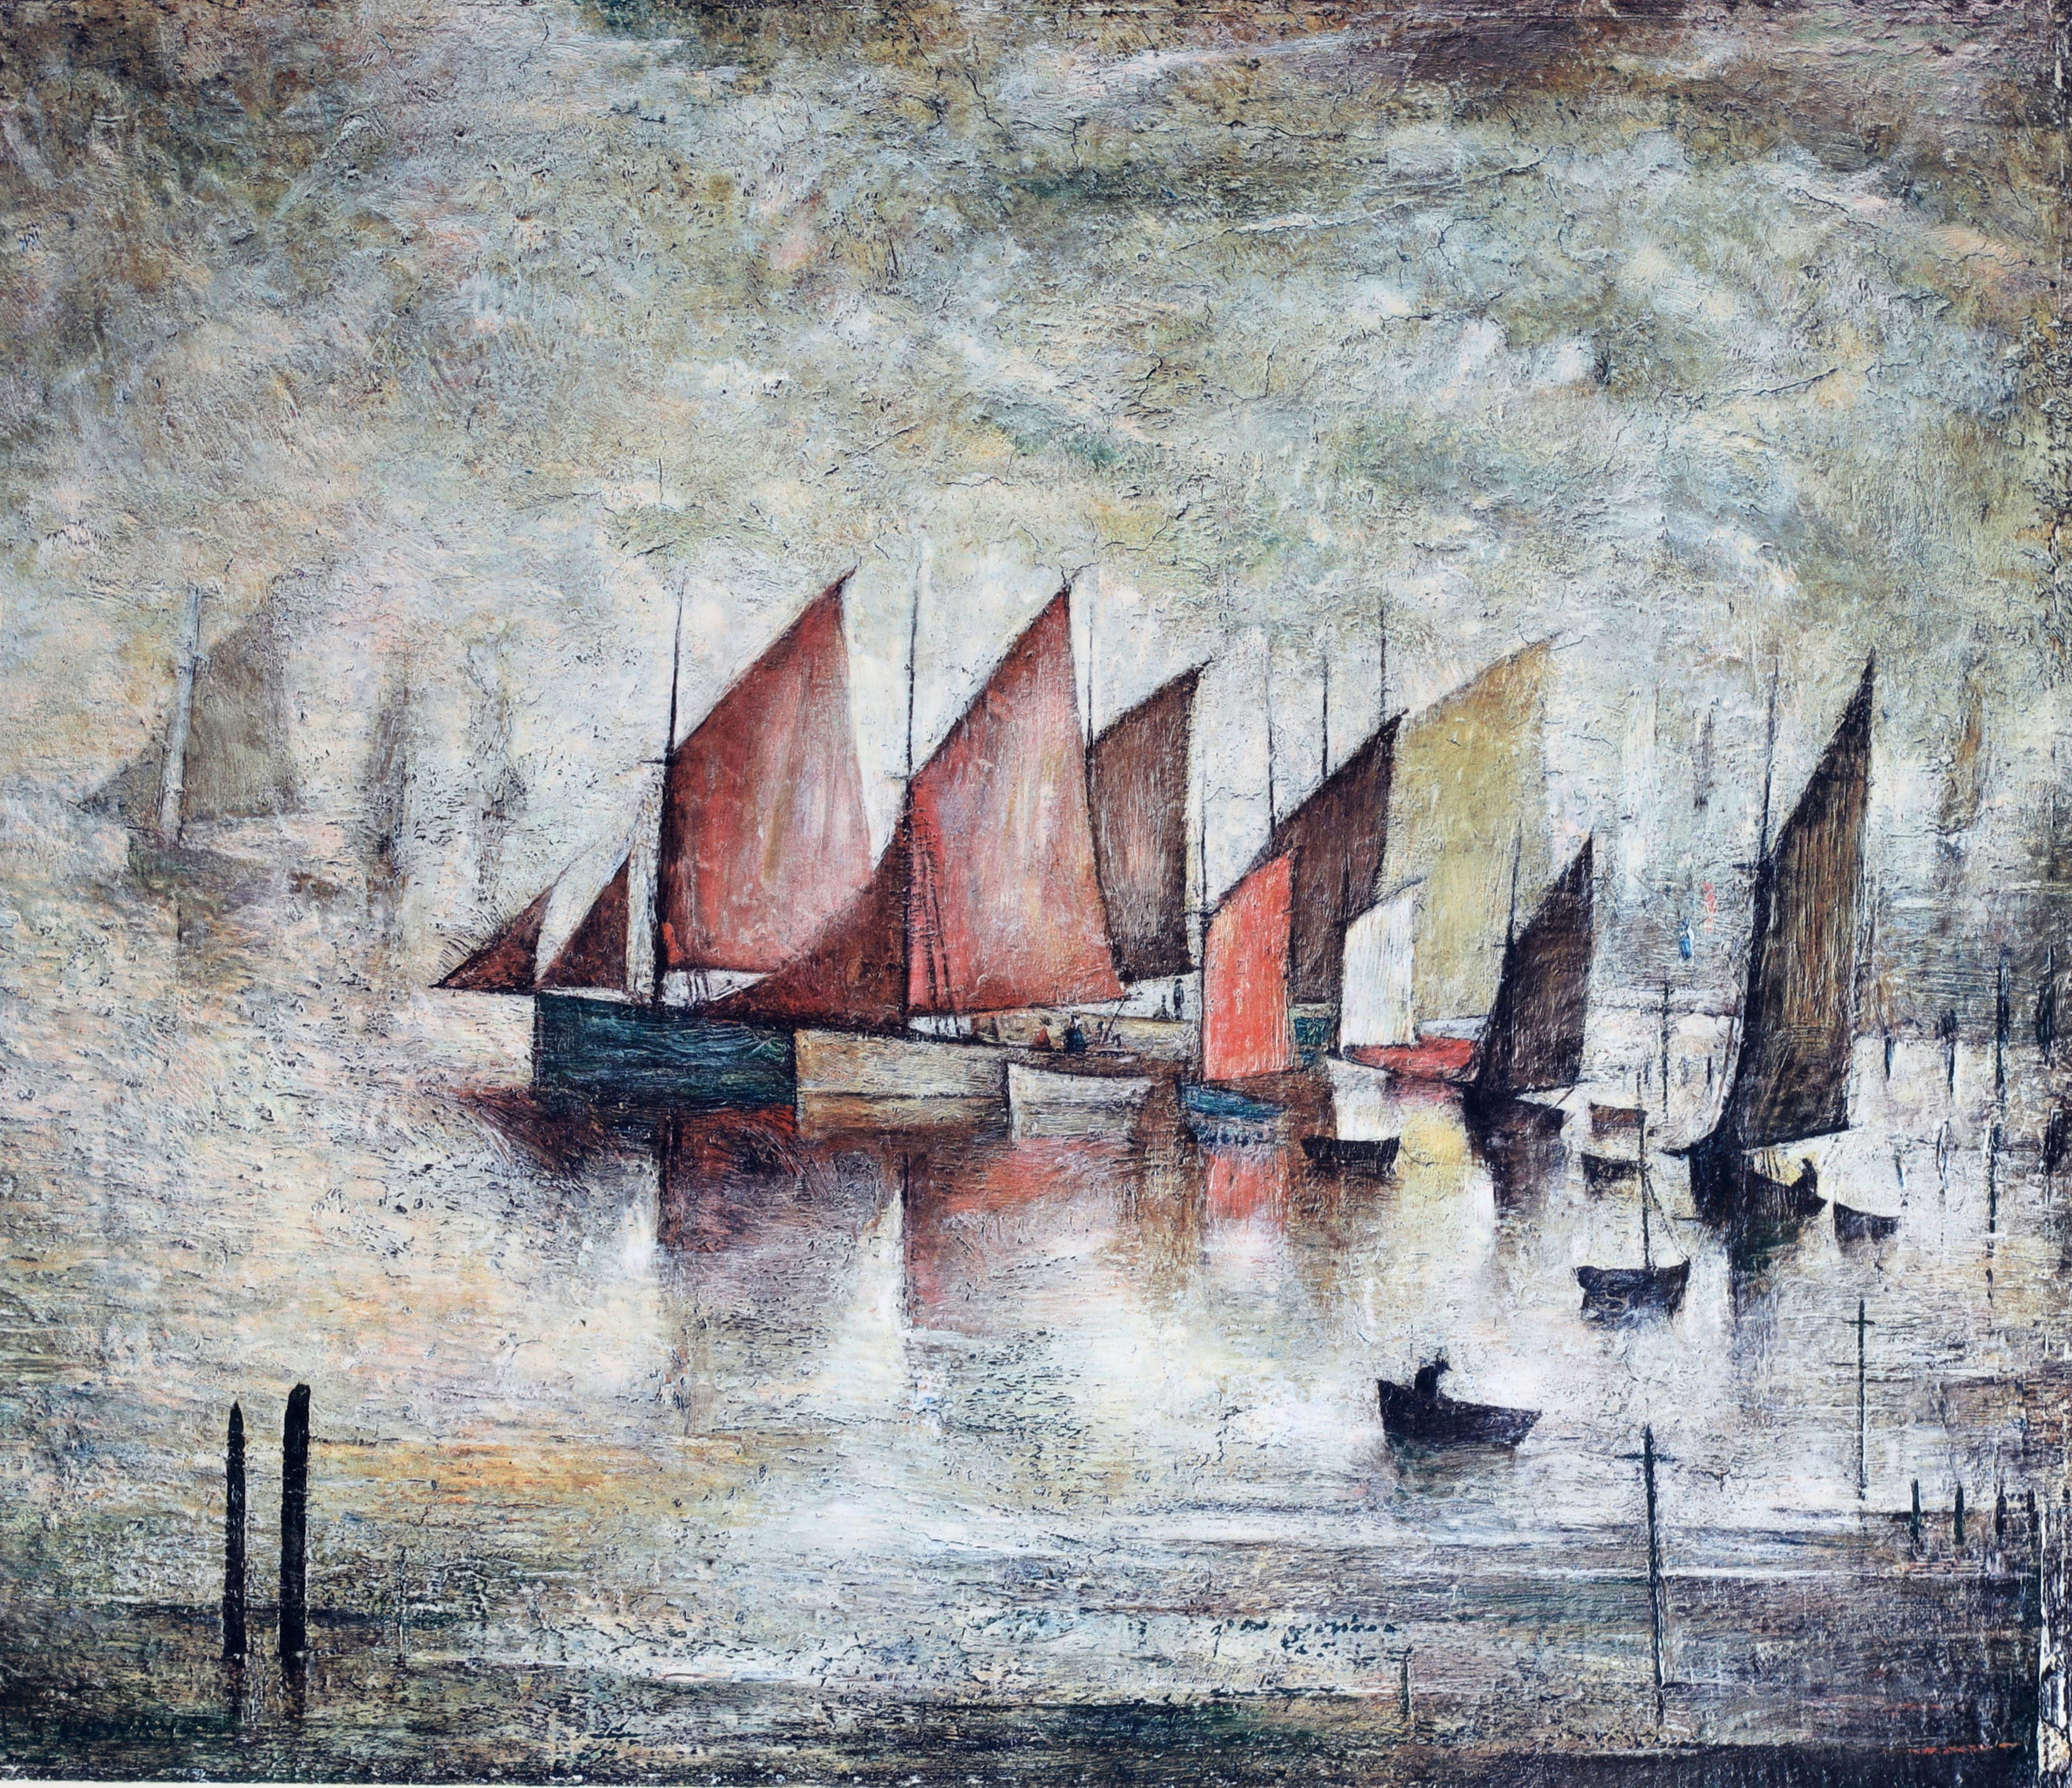 A.R.R. LAURENCE STEPHEN LOWRY (1887-1976) SIGNED PRINT 'SAILING BOATS' signed in pencil in the - Image 4 of 8